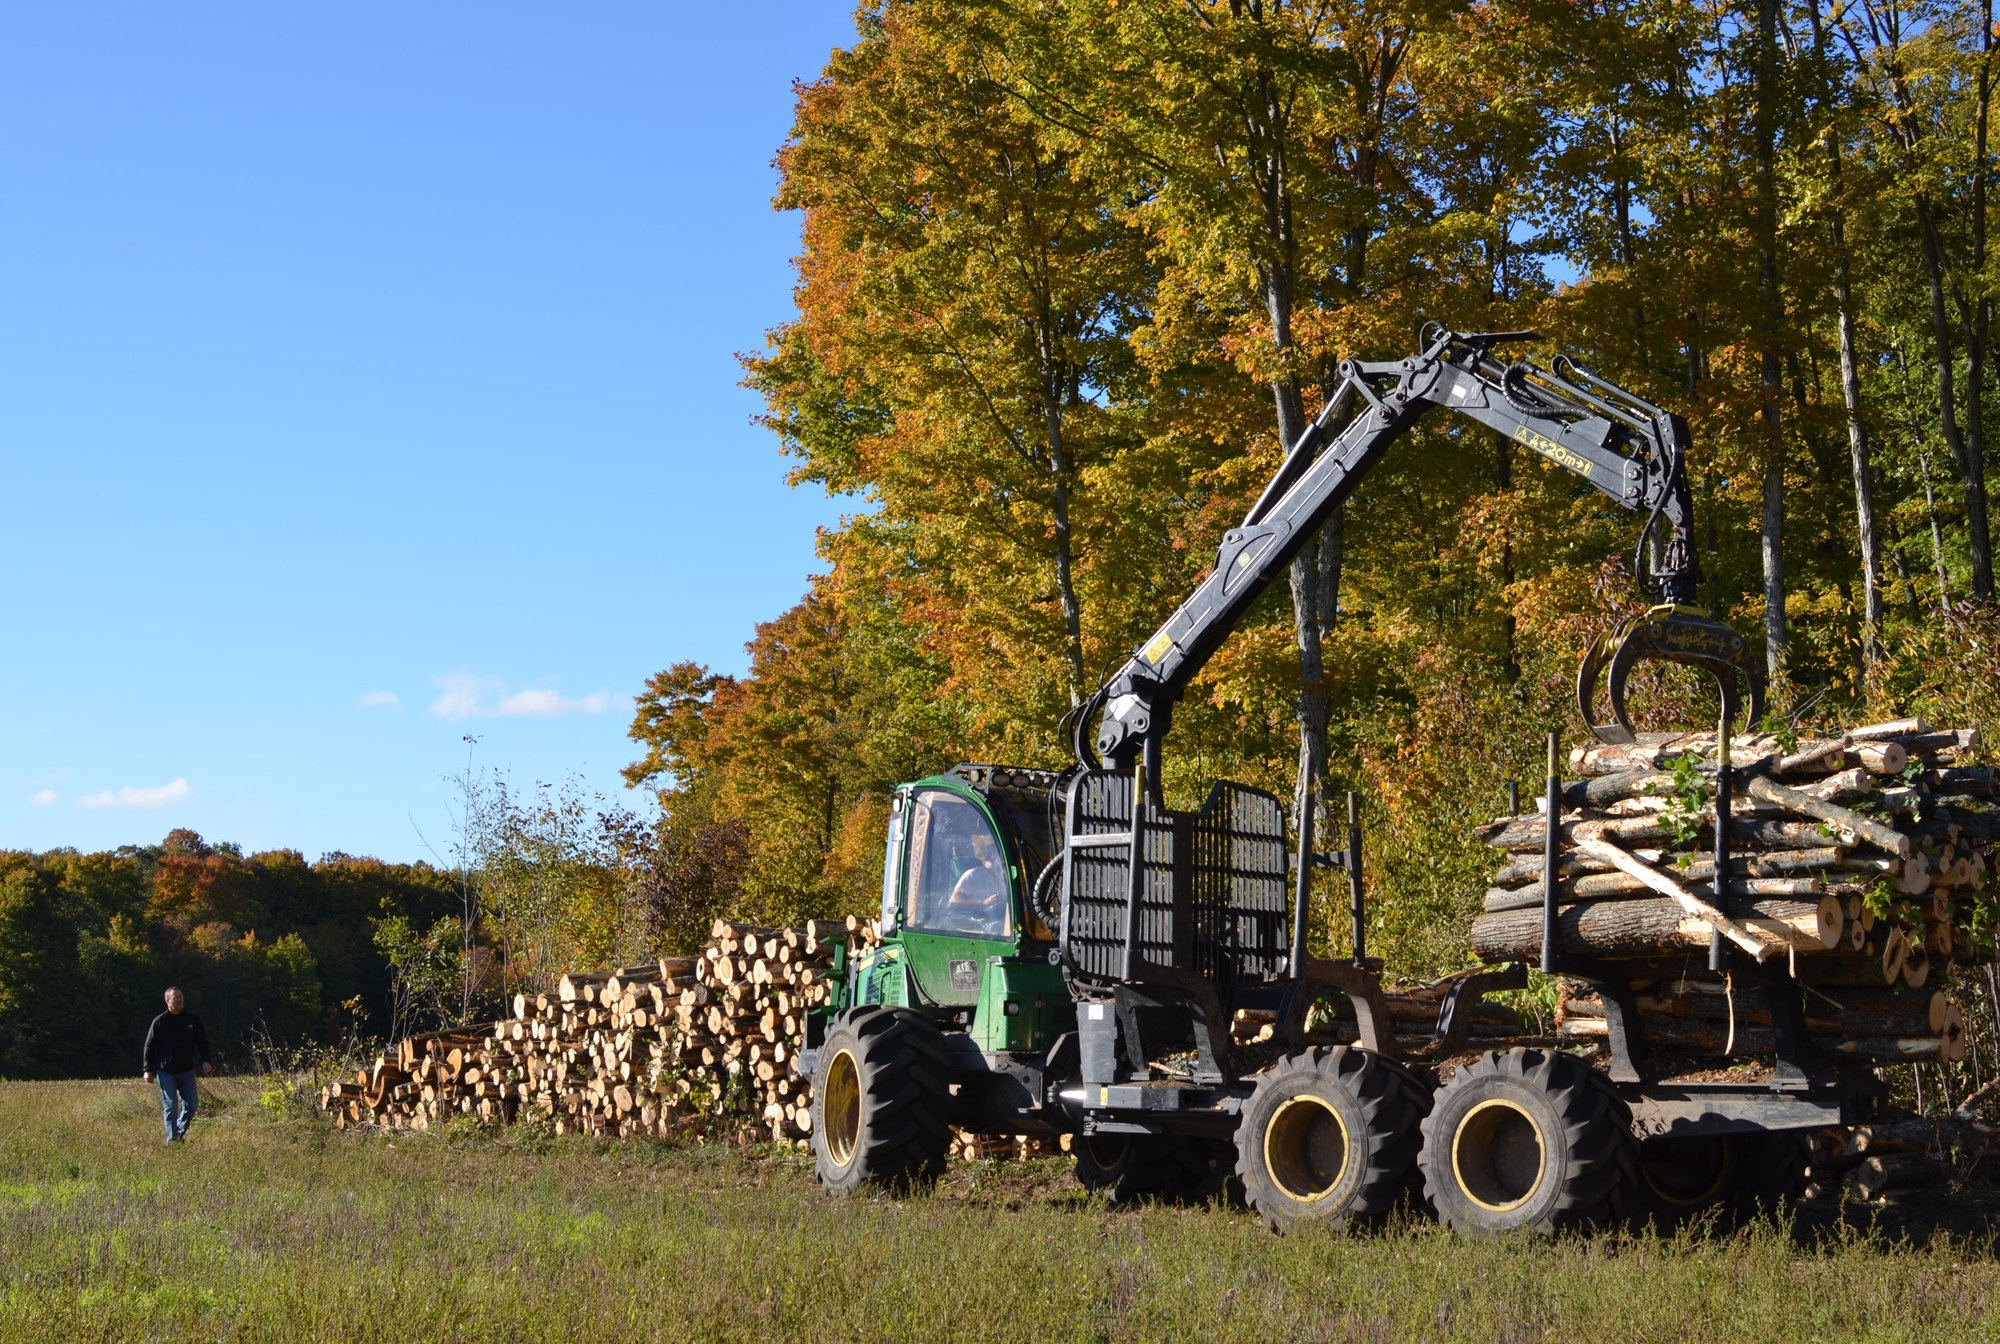 Against a blue autumn sky, logs are being moved on a Mackinac County logging operation.